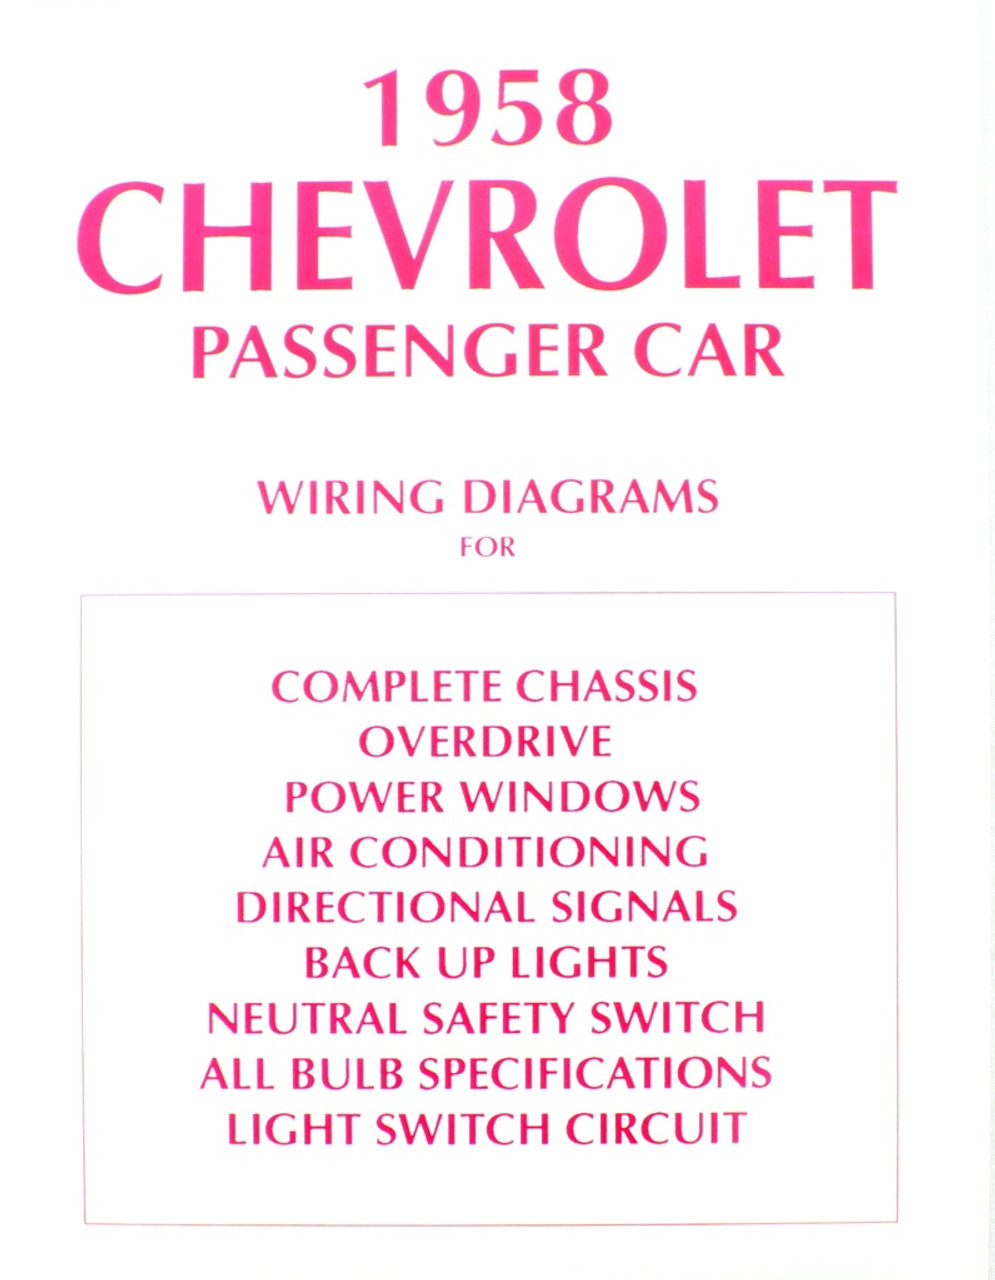 58 CHEVY IMPALA ELECTRICAL WIRING DIAGRAM MANUAL 1958 - I-5 Classic ...